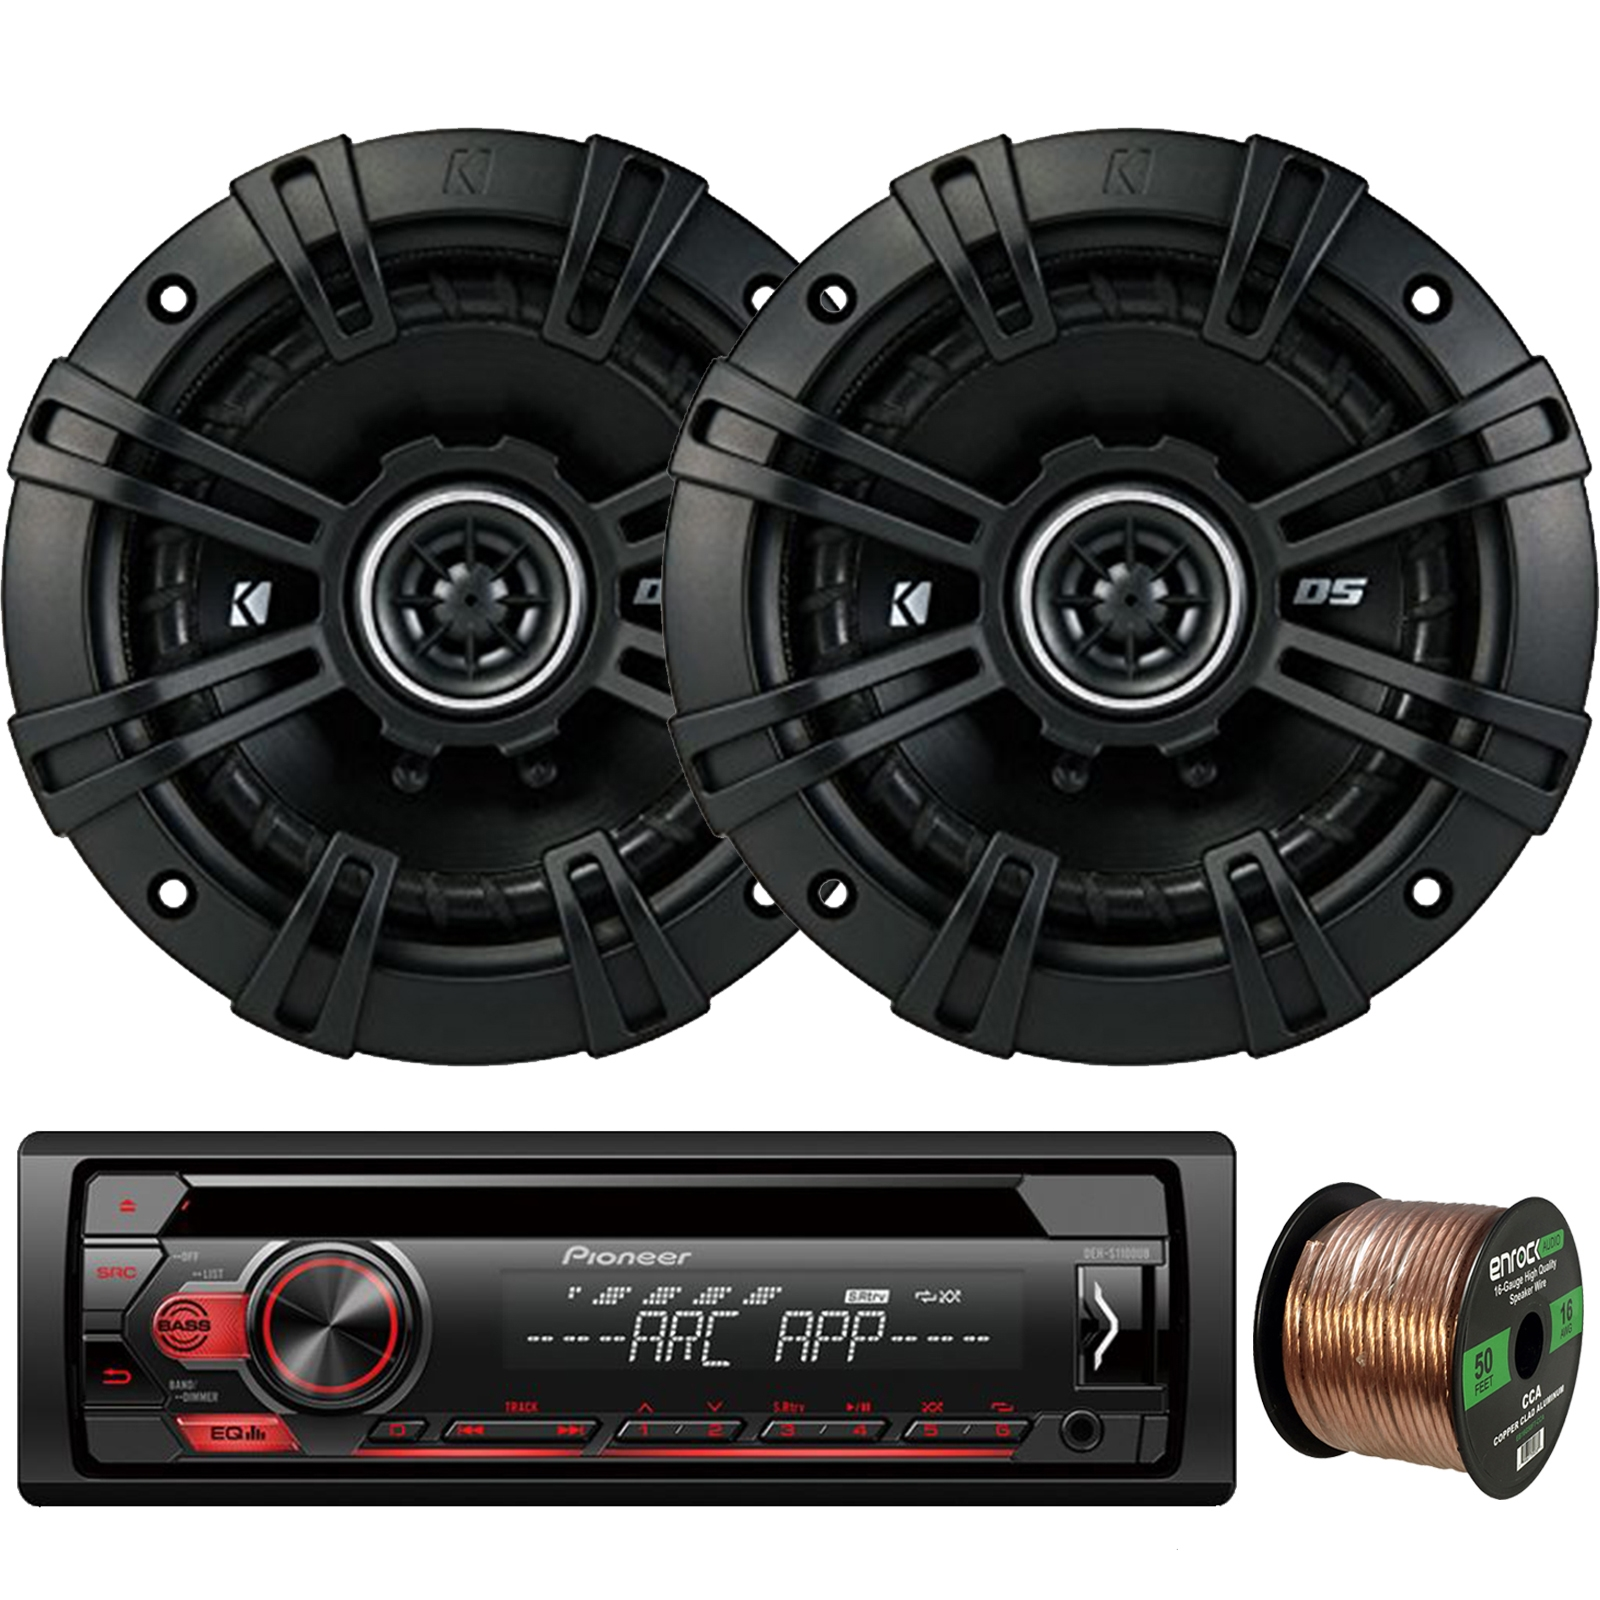 "Pioneer DEH-S1100UB Single-DIN CD Player AM/FM Car Stereo Receiver, 2 x Kicker DSC50 DS Series 5.25"" 4-Ohm Coaxial Car Audio Speakers, 16-Gauge 50Ft. Speaker Wire"